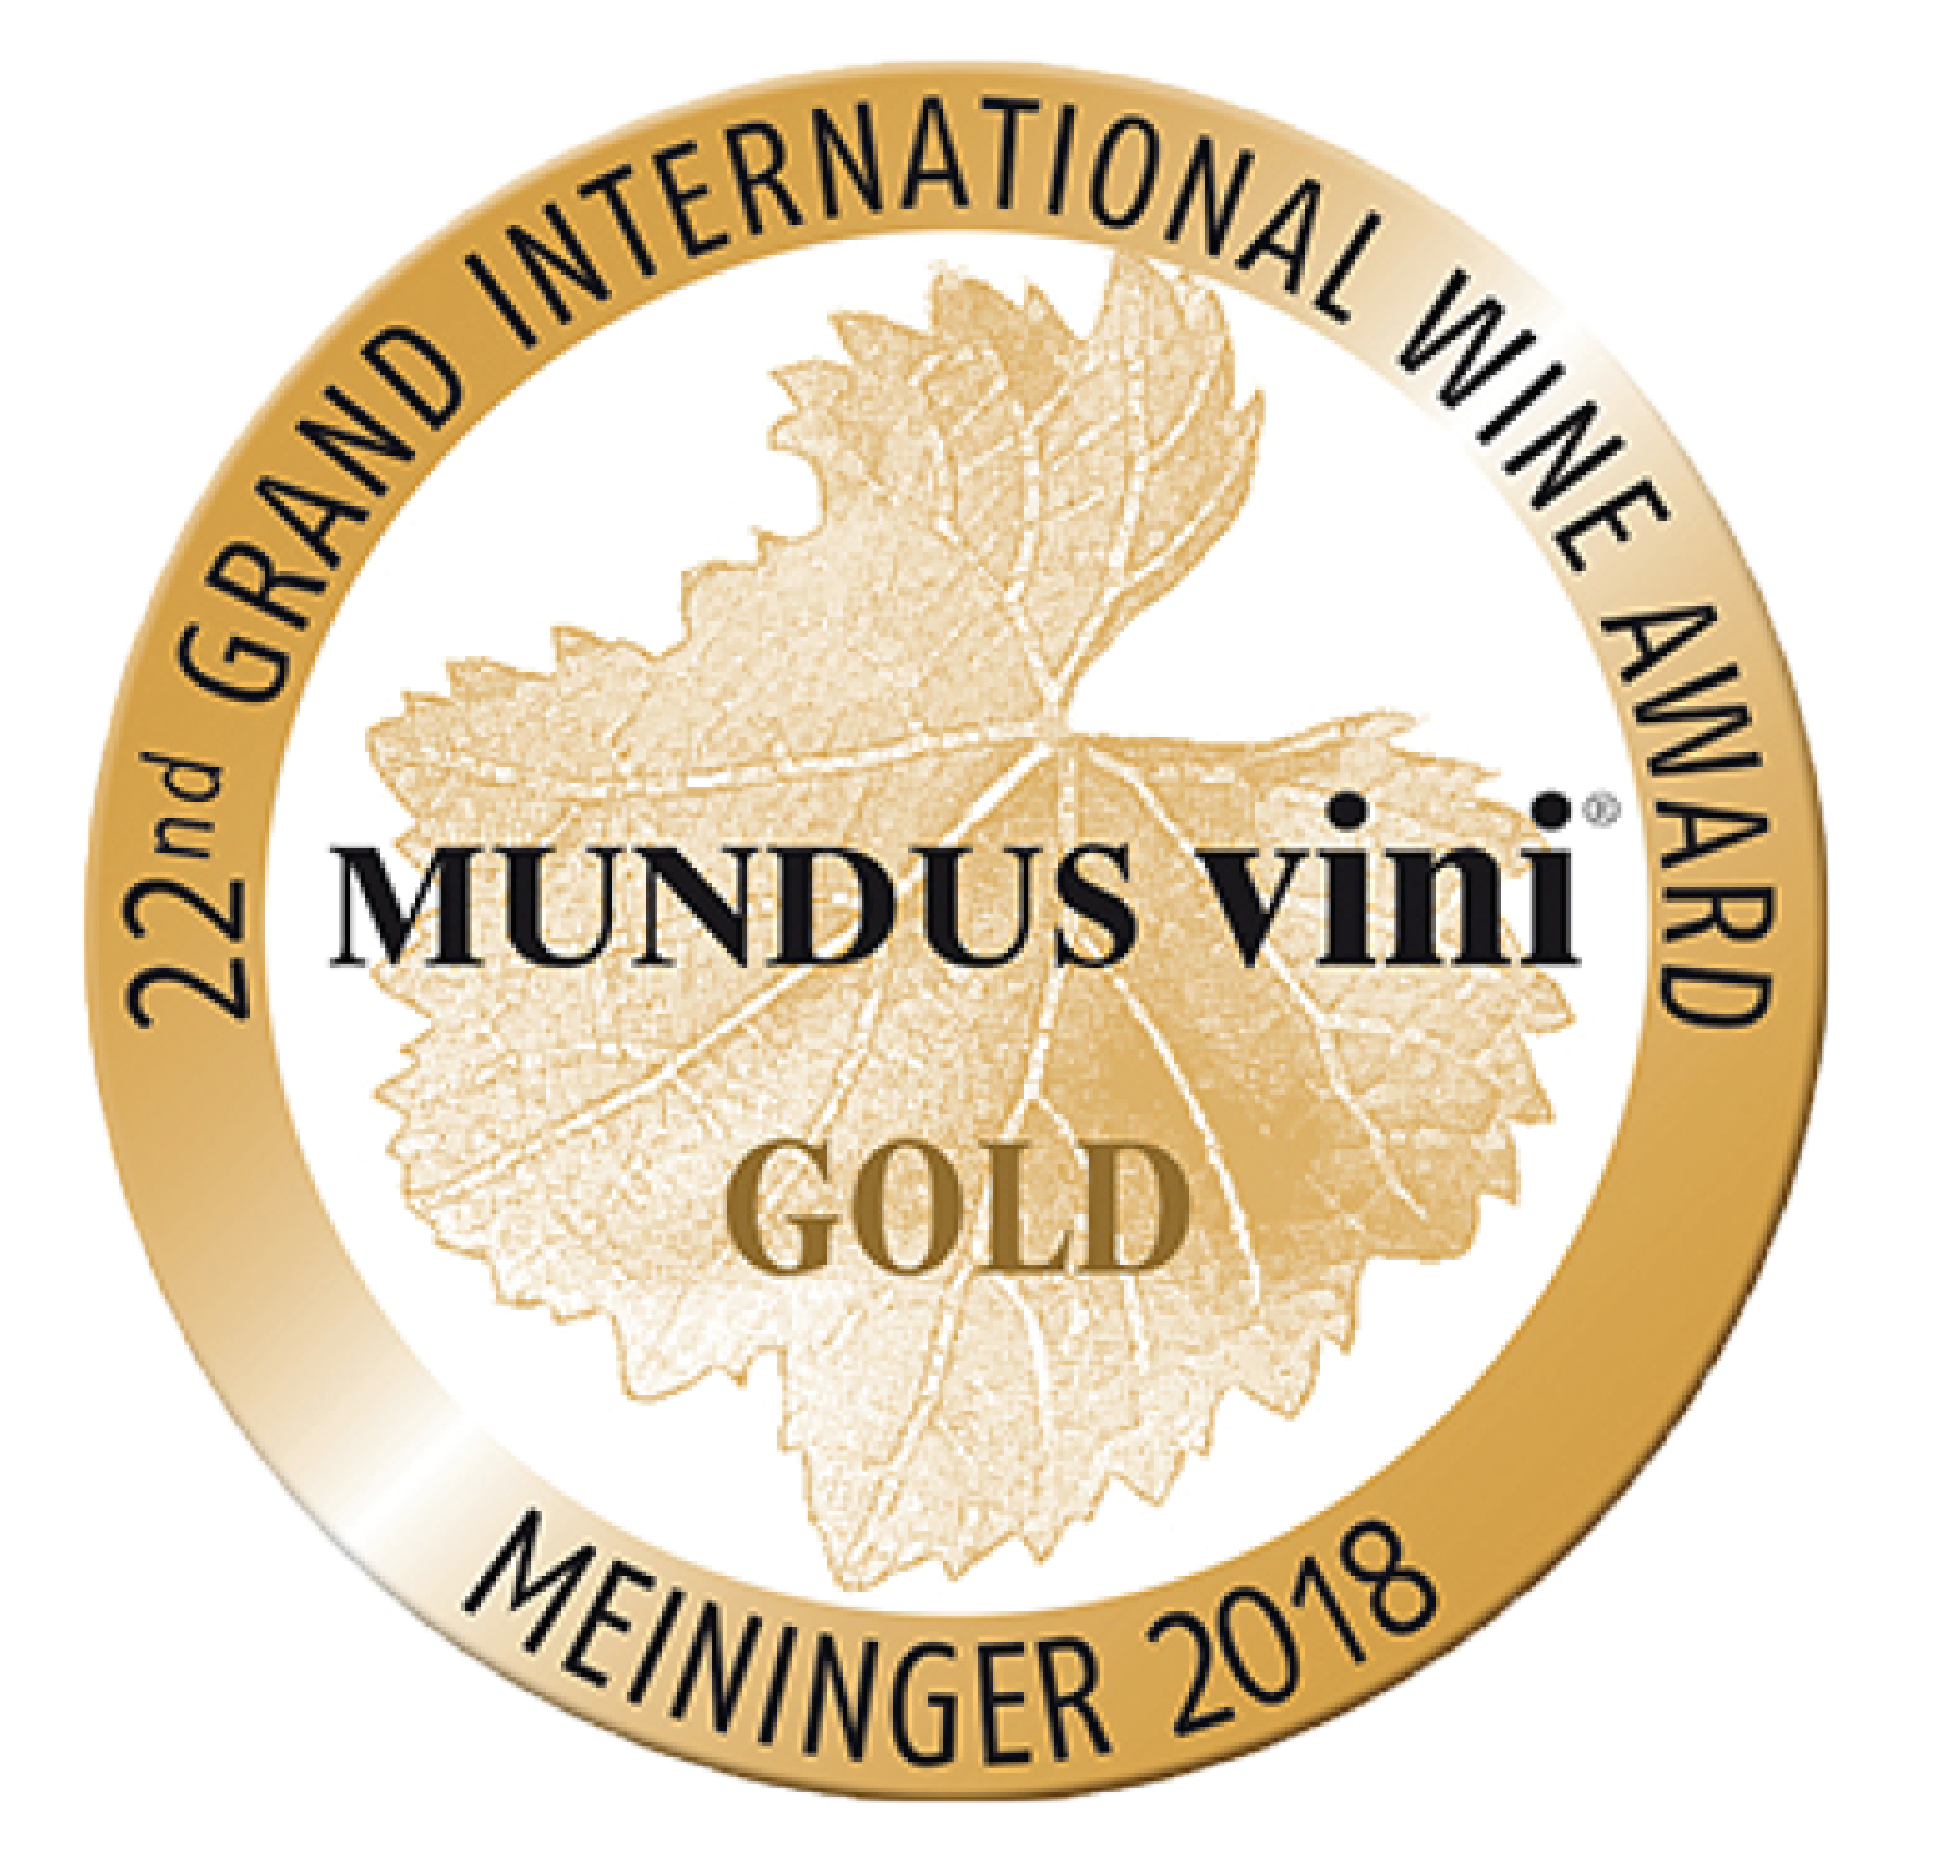 2012 vintage awarded the Gold Medal at the Grand International Wine Award Mundus Vini, 2018, Berlin (Germany).